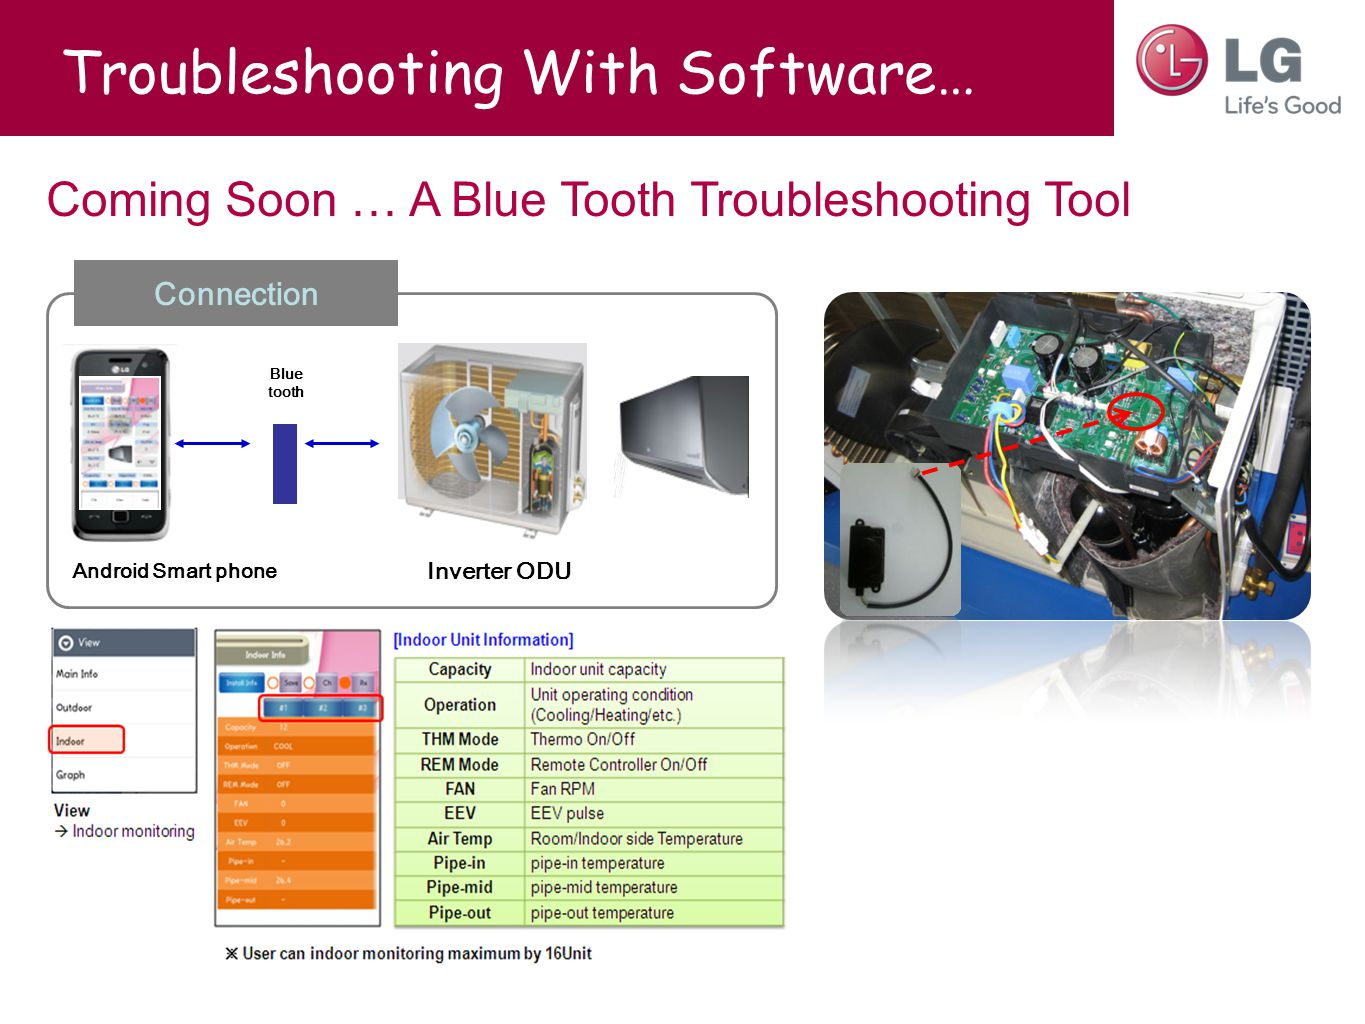 Troubleshooting With Software… Coming Soon … A Blue Tooth Troubleshooting Tool Android Smart phone Connection Cable Blue tooth Inverter ODU Blue tooth